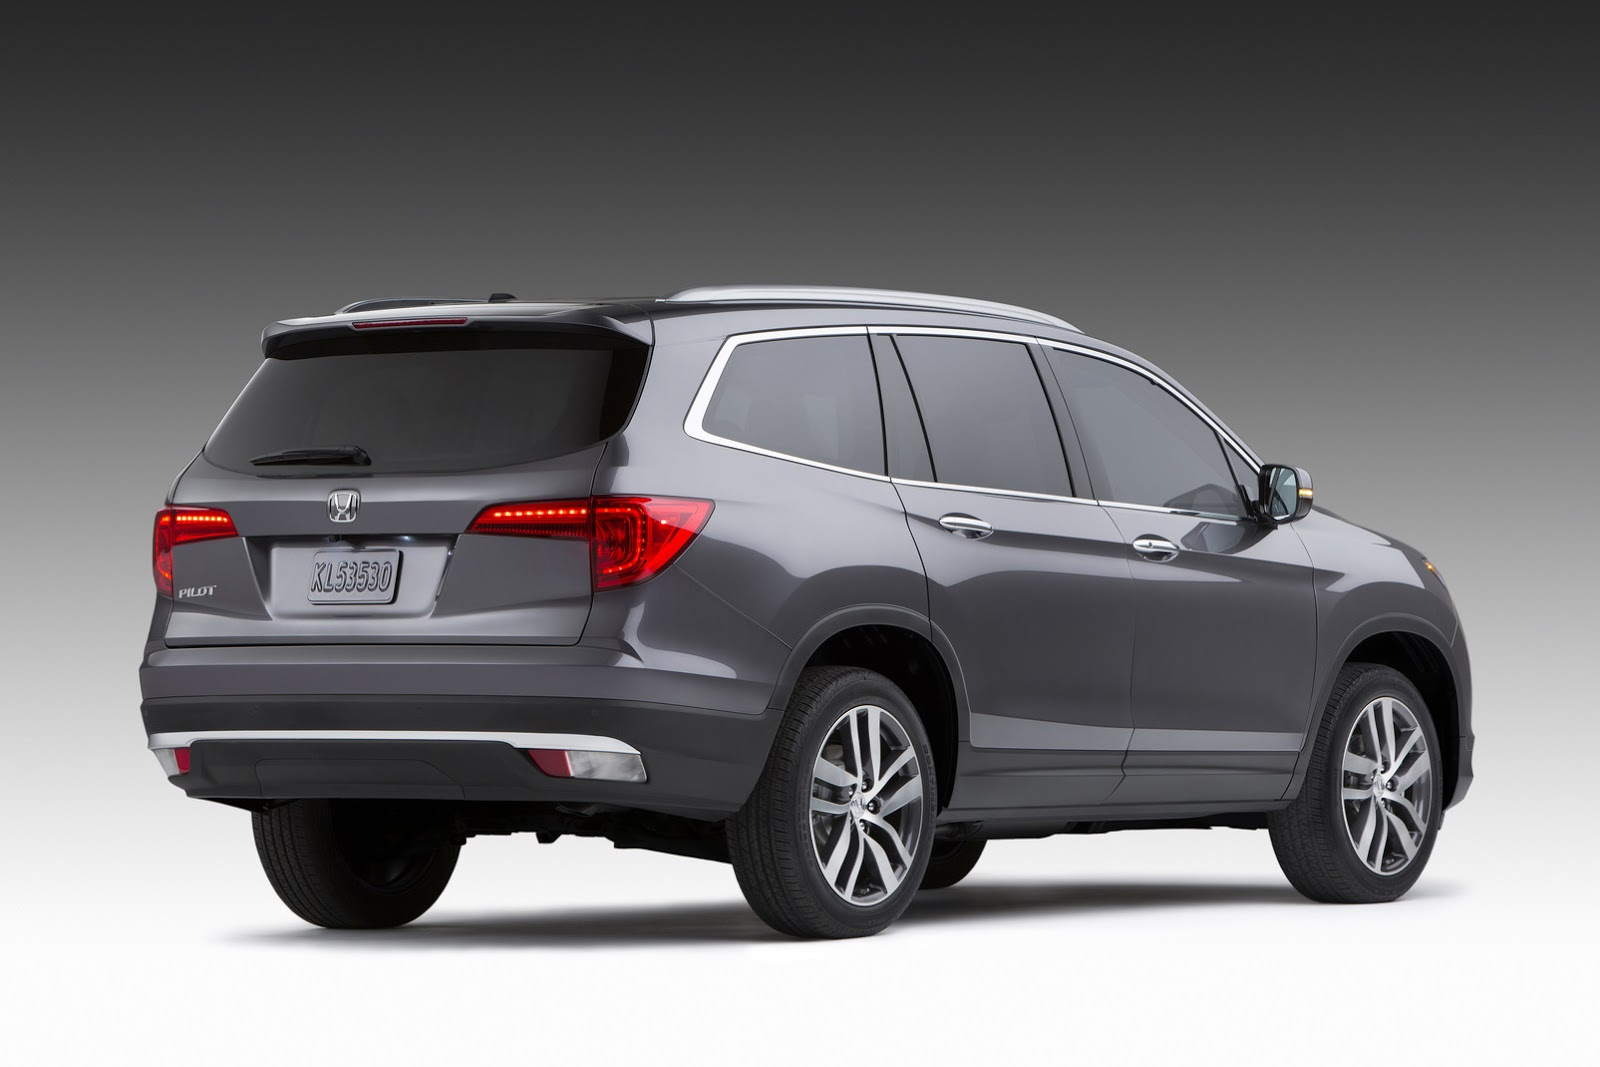 2016 Honda Pilot and 2016 Acura RDX Teased, to Debut at 2015 Chicago Auto Show - autoevolution